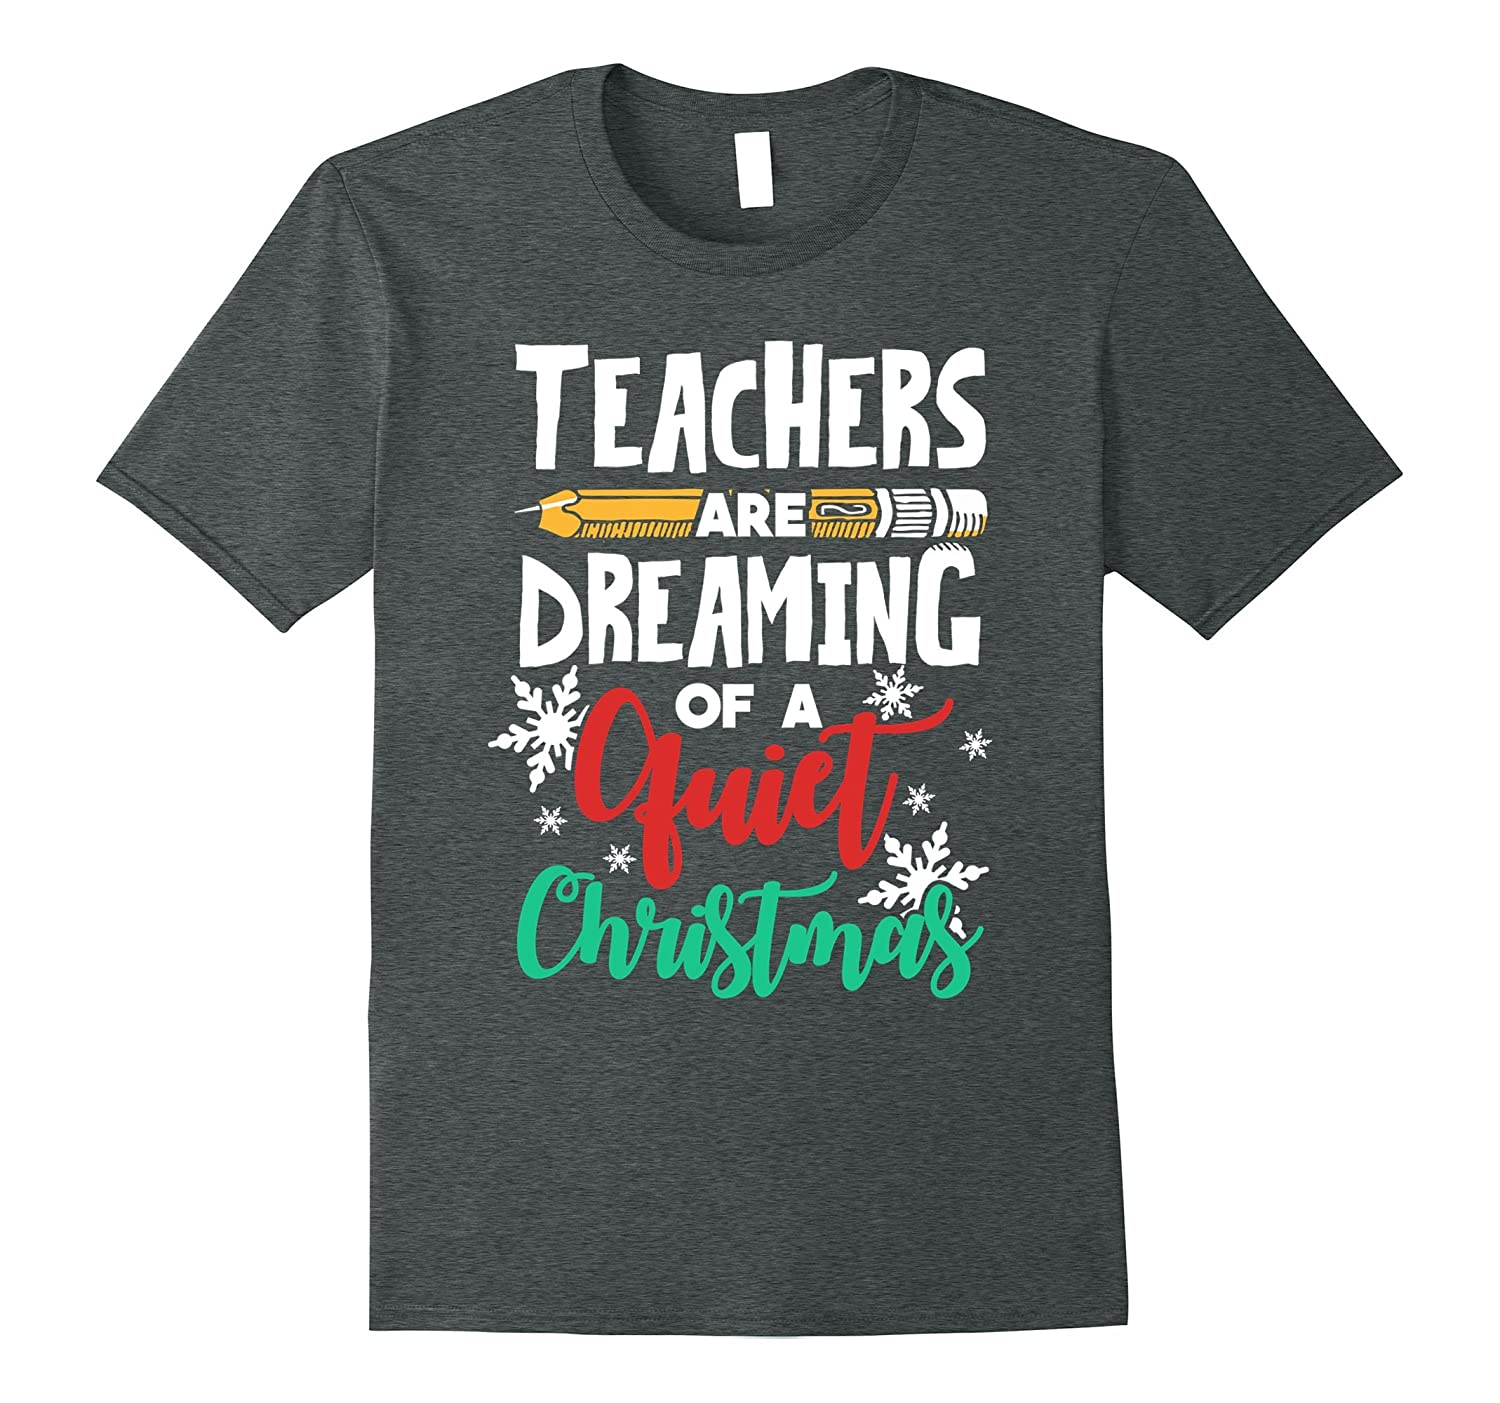 Teachers Are Dreaming of a Quiet Christmas Break T-Shirt-FL